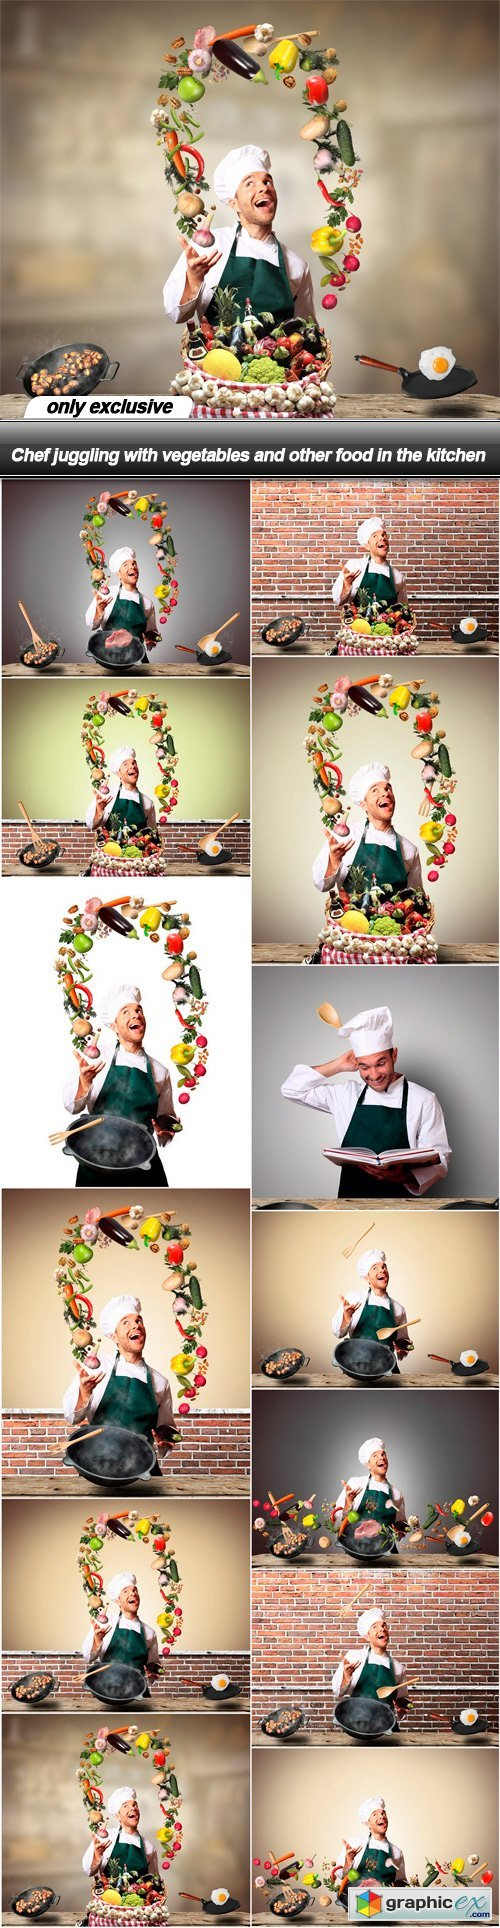 Chef juggling with vegetables and other food in the kitchen - 13 UHQ JPEG